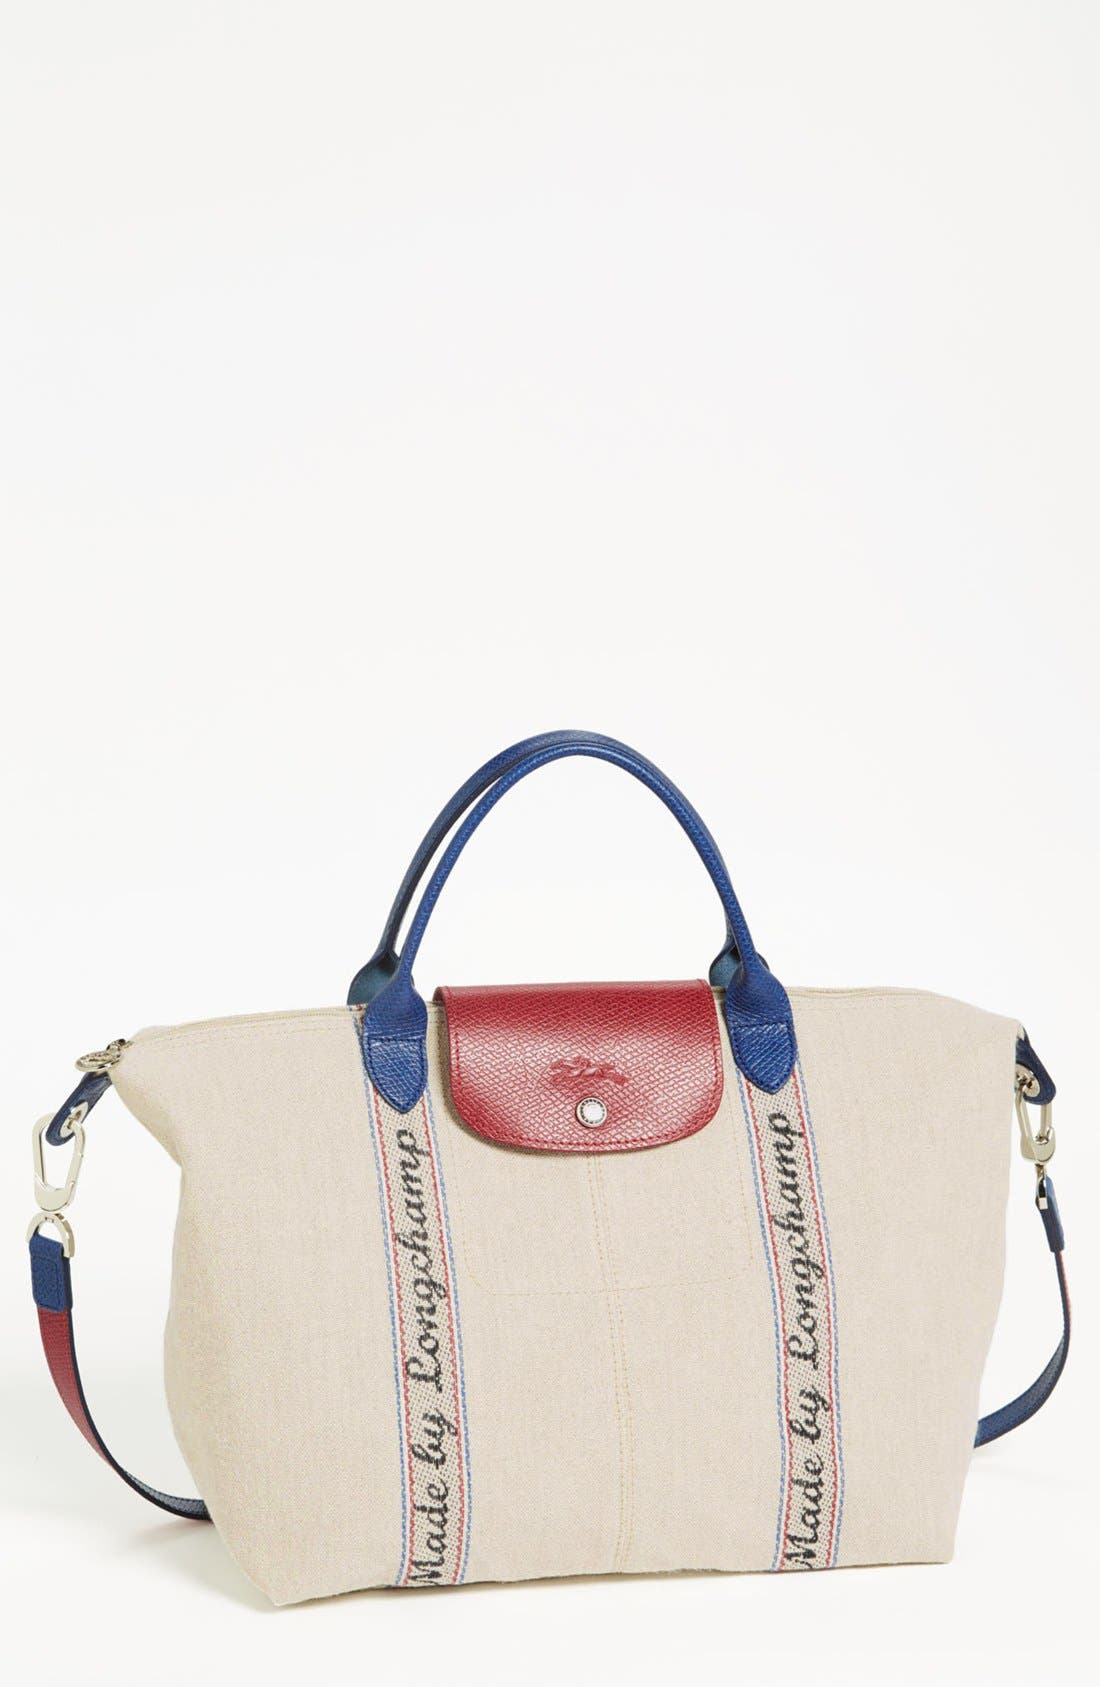 Main Image - Longchamp 'Made by Longchamp' Tote